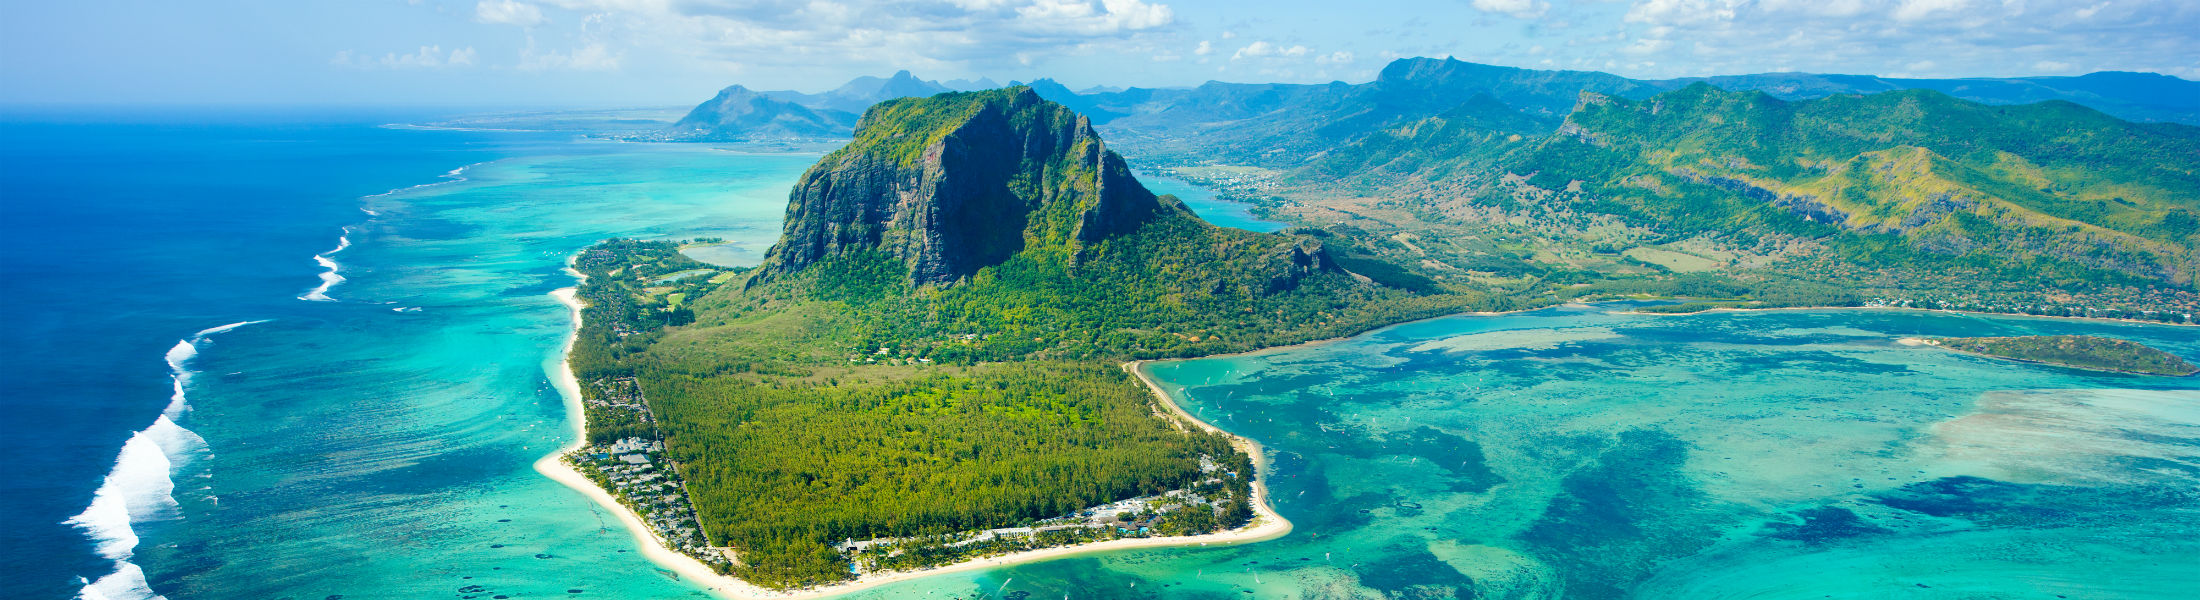 Mauritius Isalnd aerial View